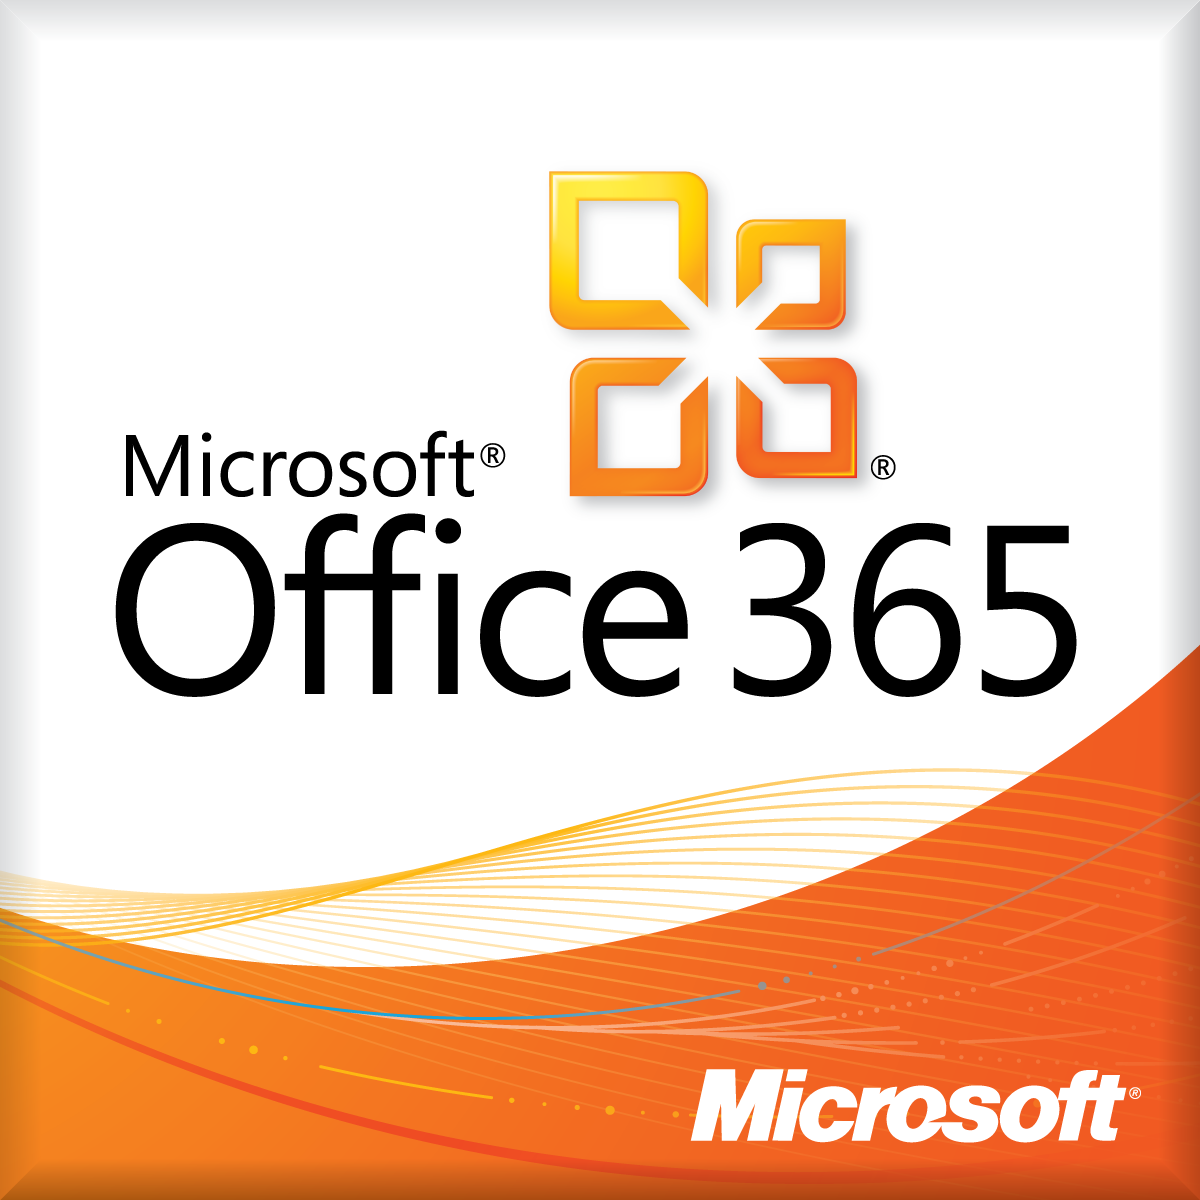 Microsoft Releases NextGeneration Office 365 for Business